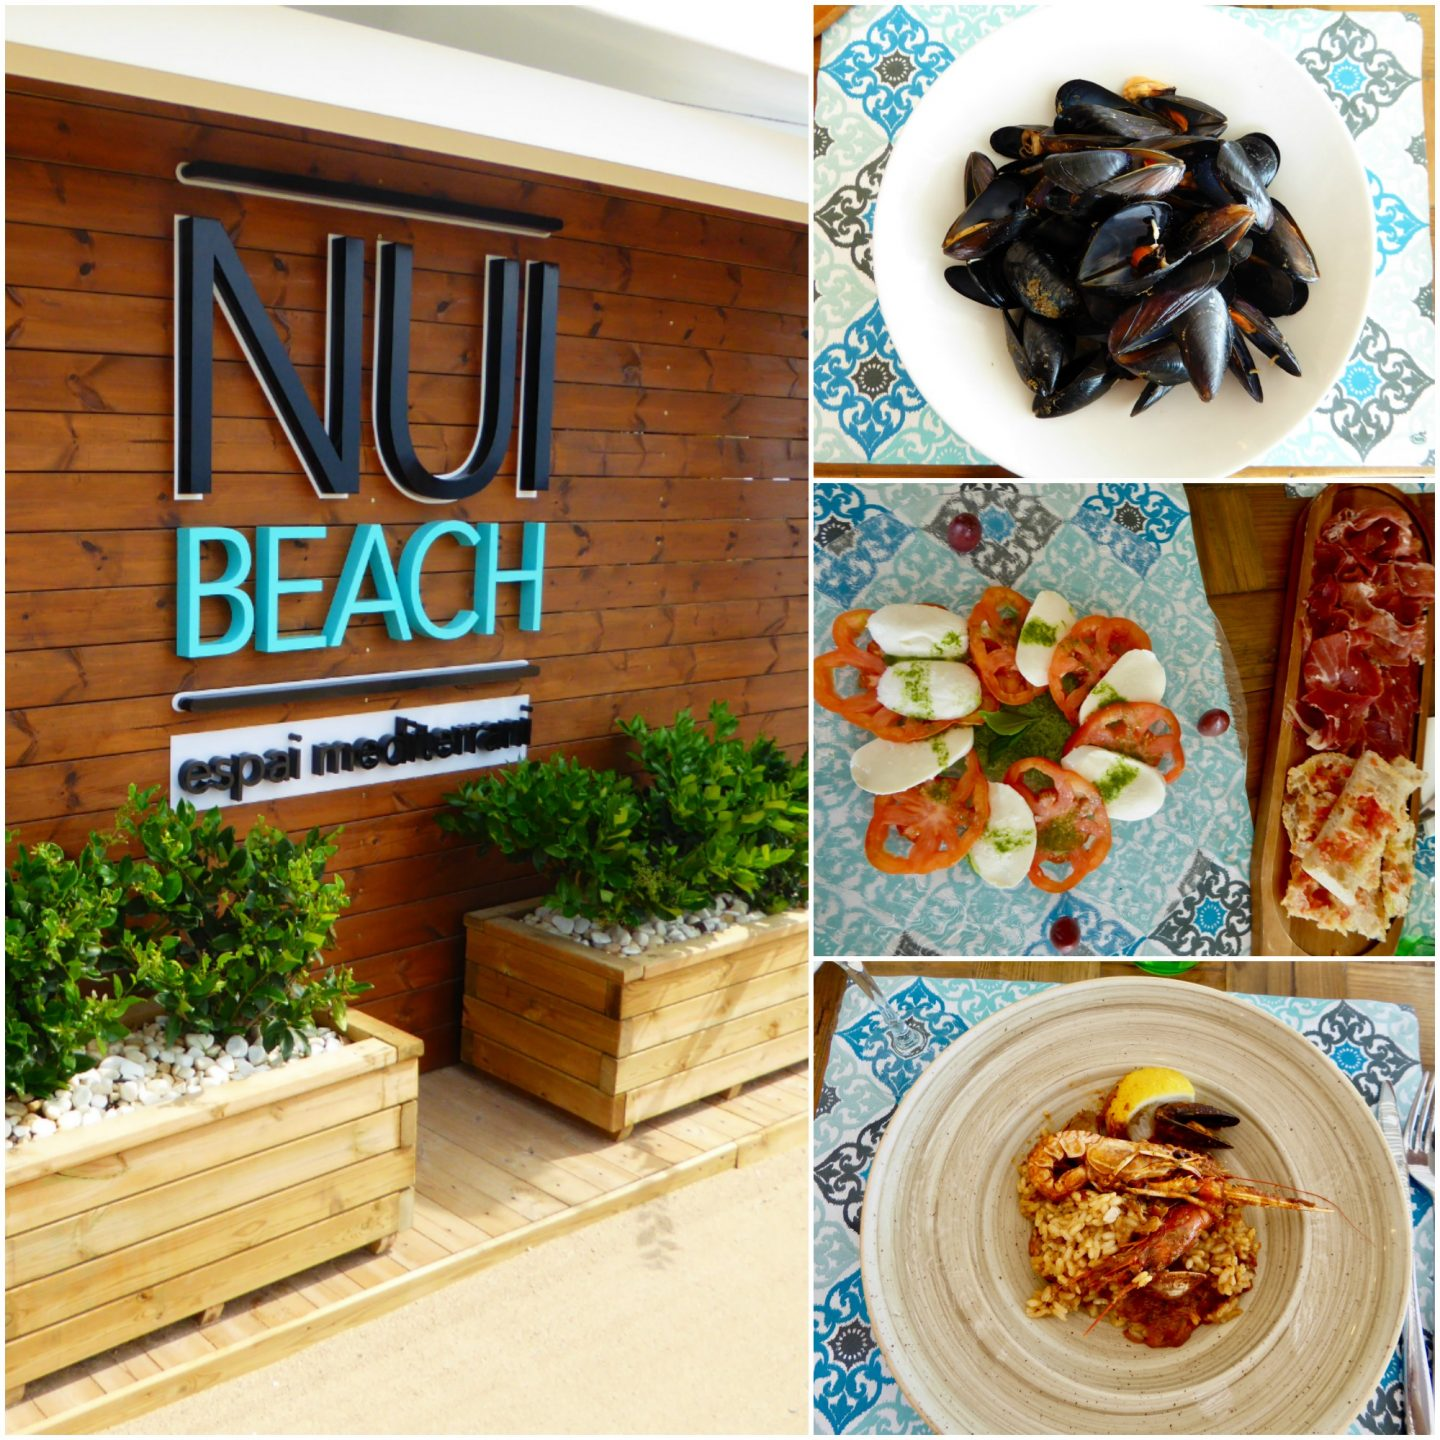 Destination guide Costa Barcelona with kids Nui Beach restaurant